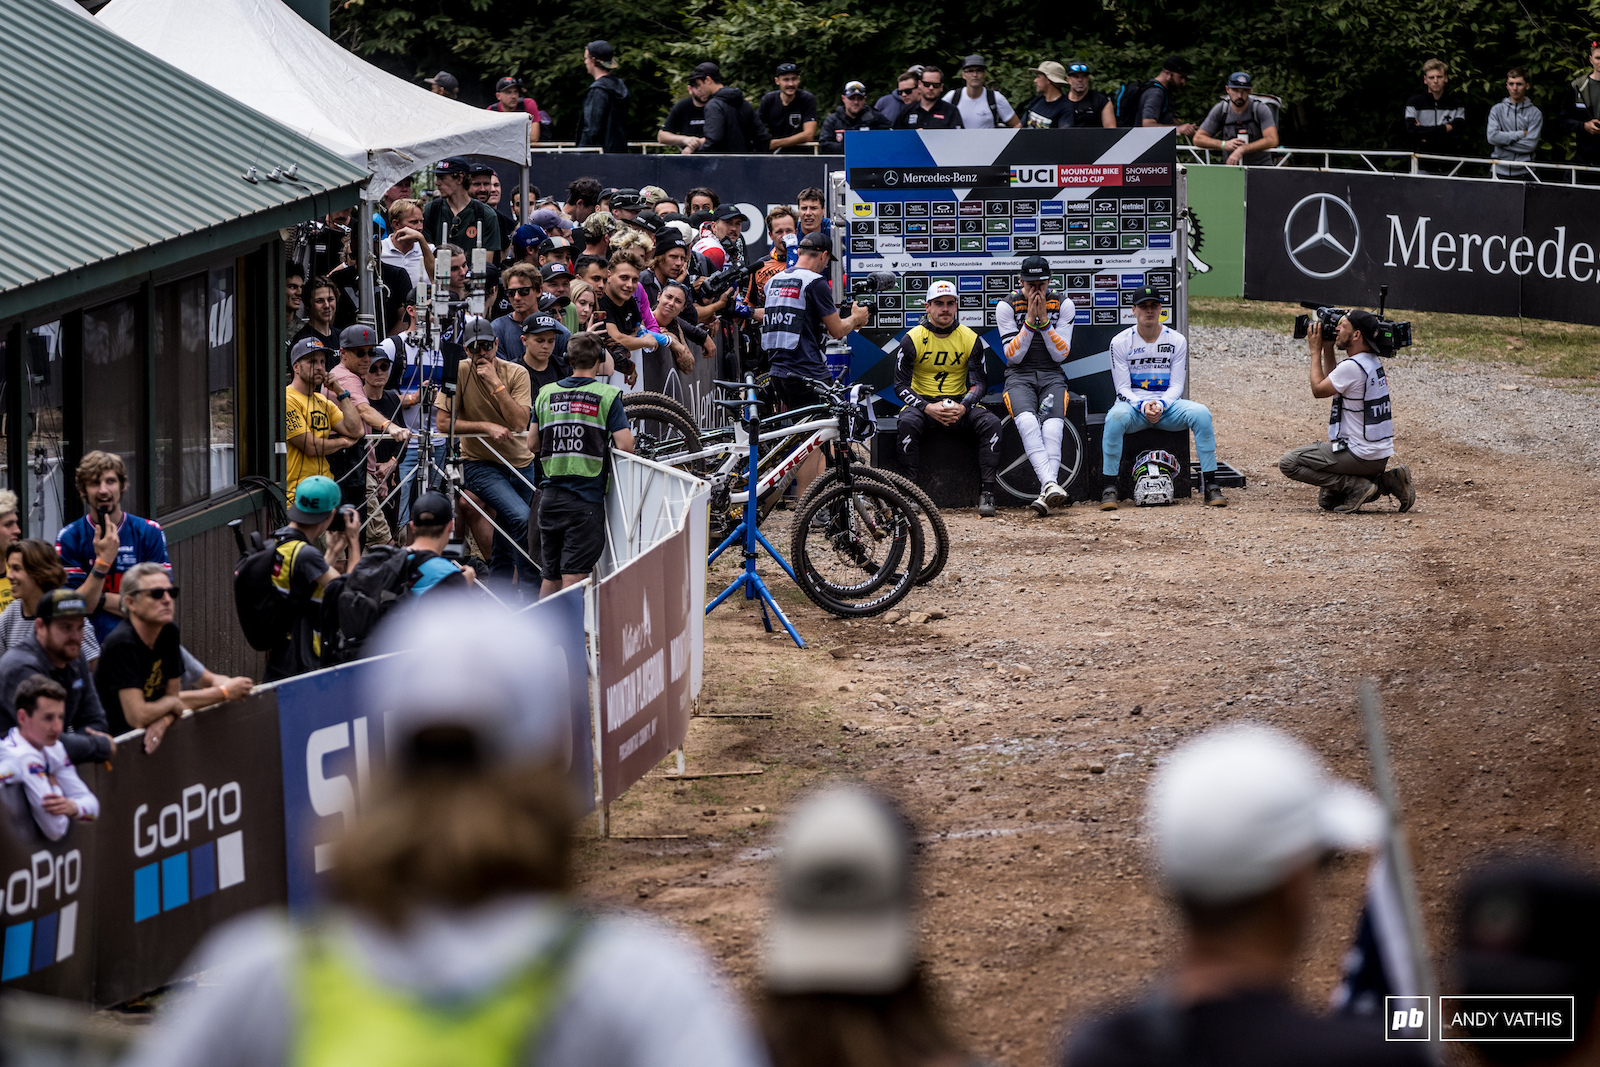 The tension on the hot seat was building with every passing rider.